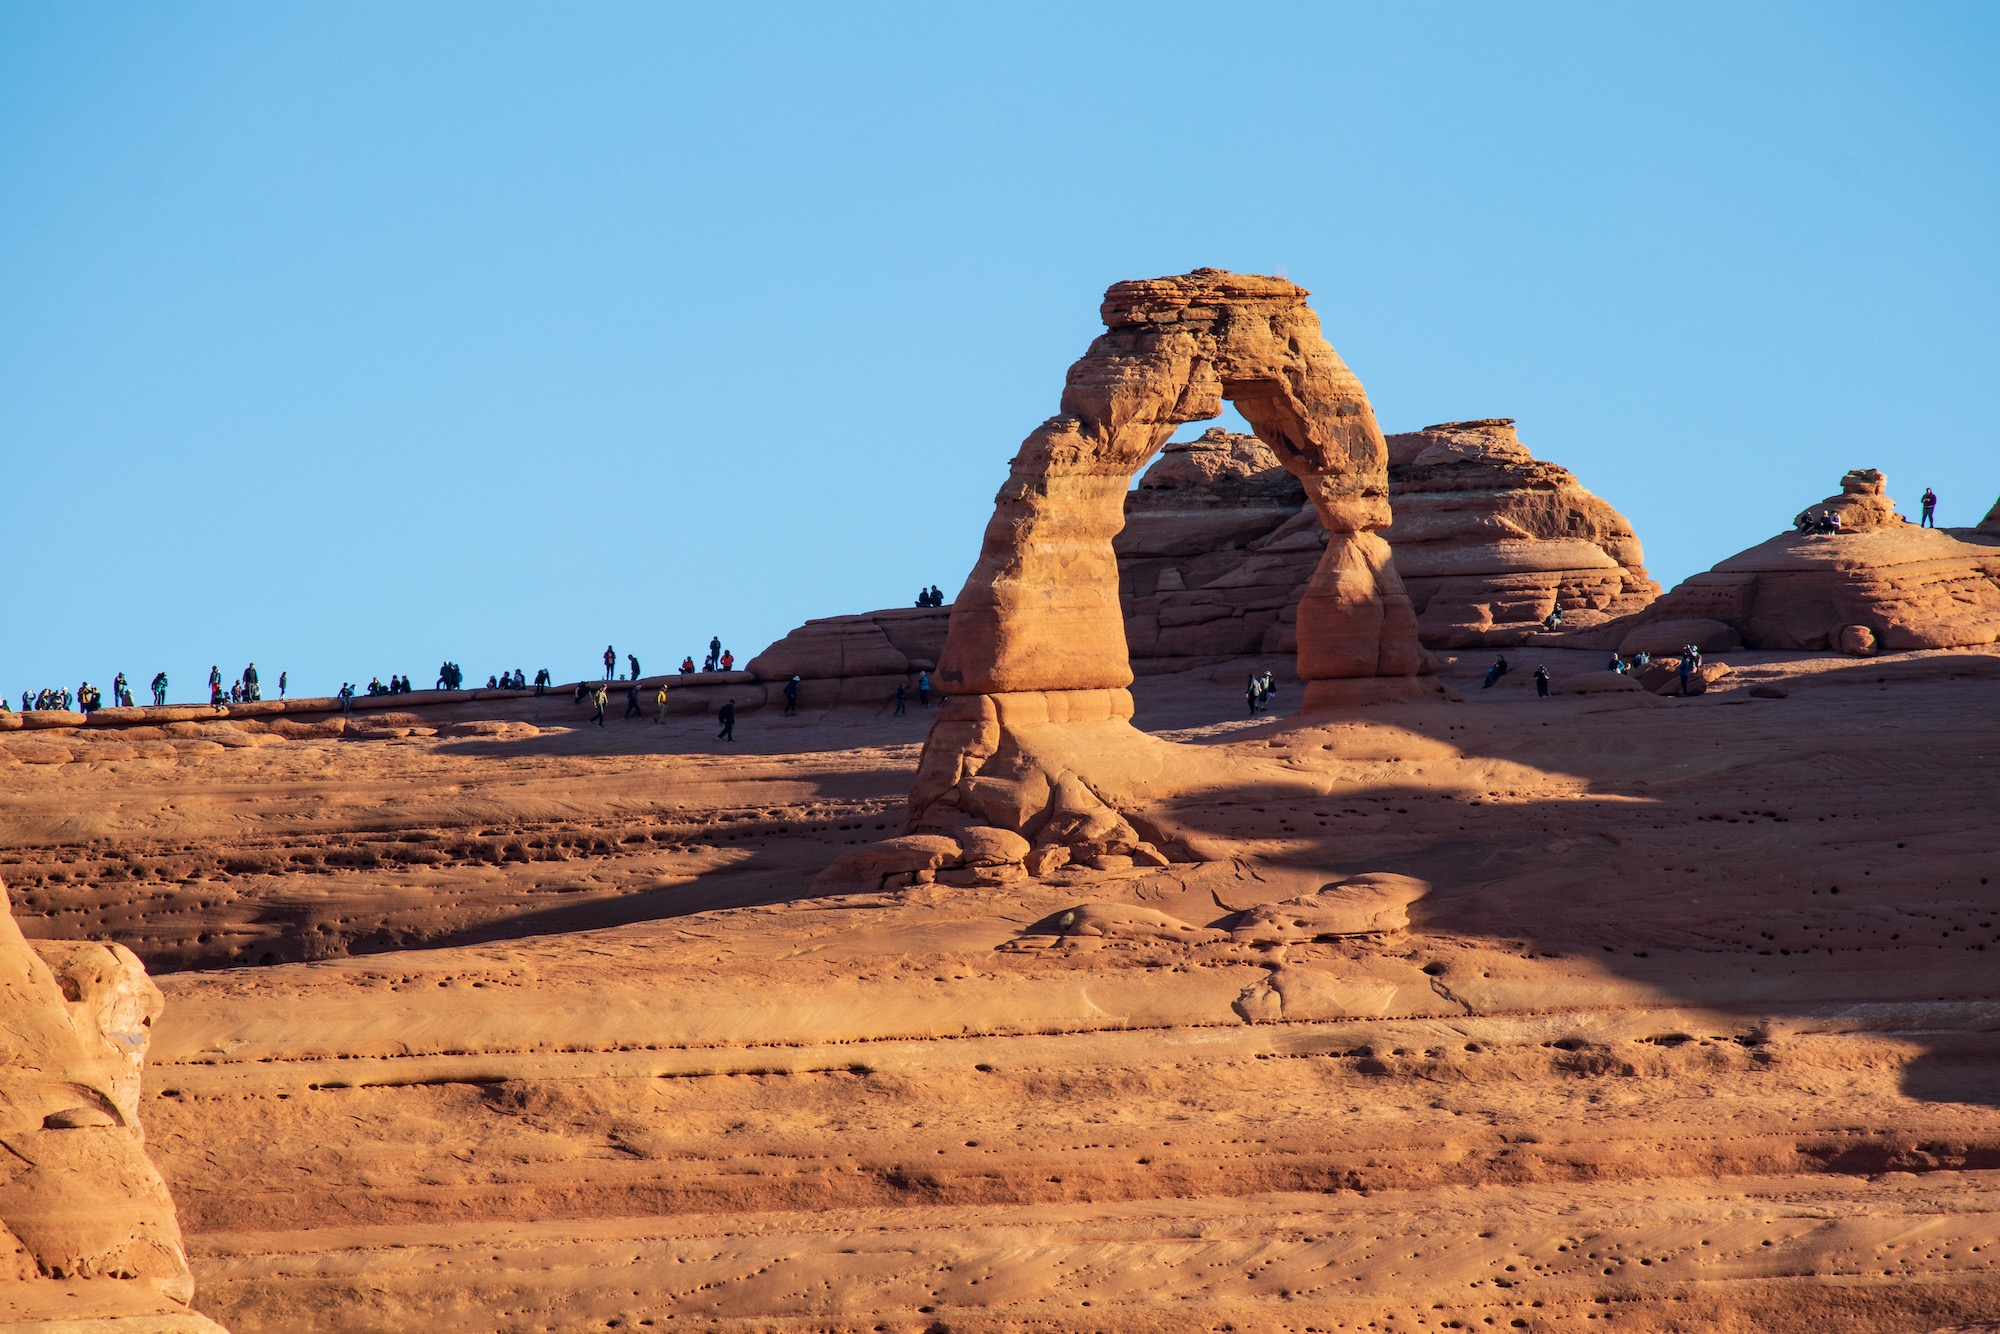 Delicate Arch viewed from the lower viewpoint. Notice the large crowd gathering already.